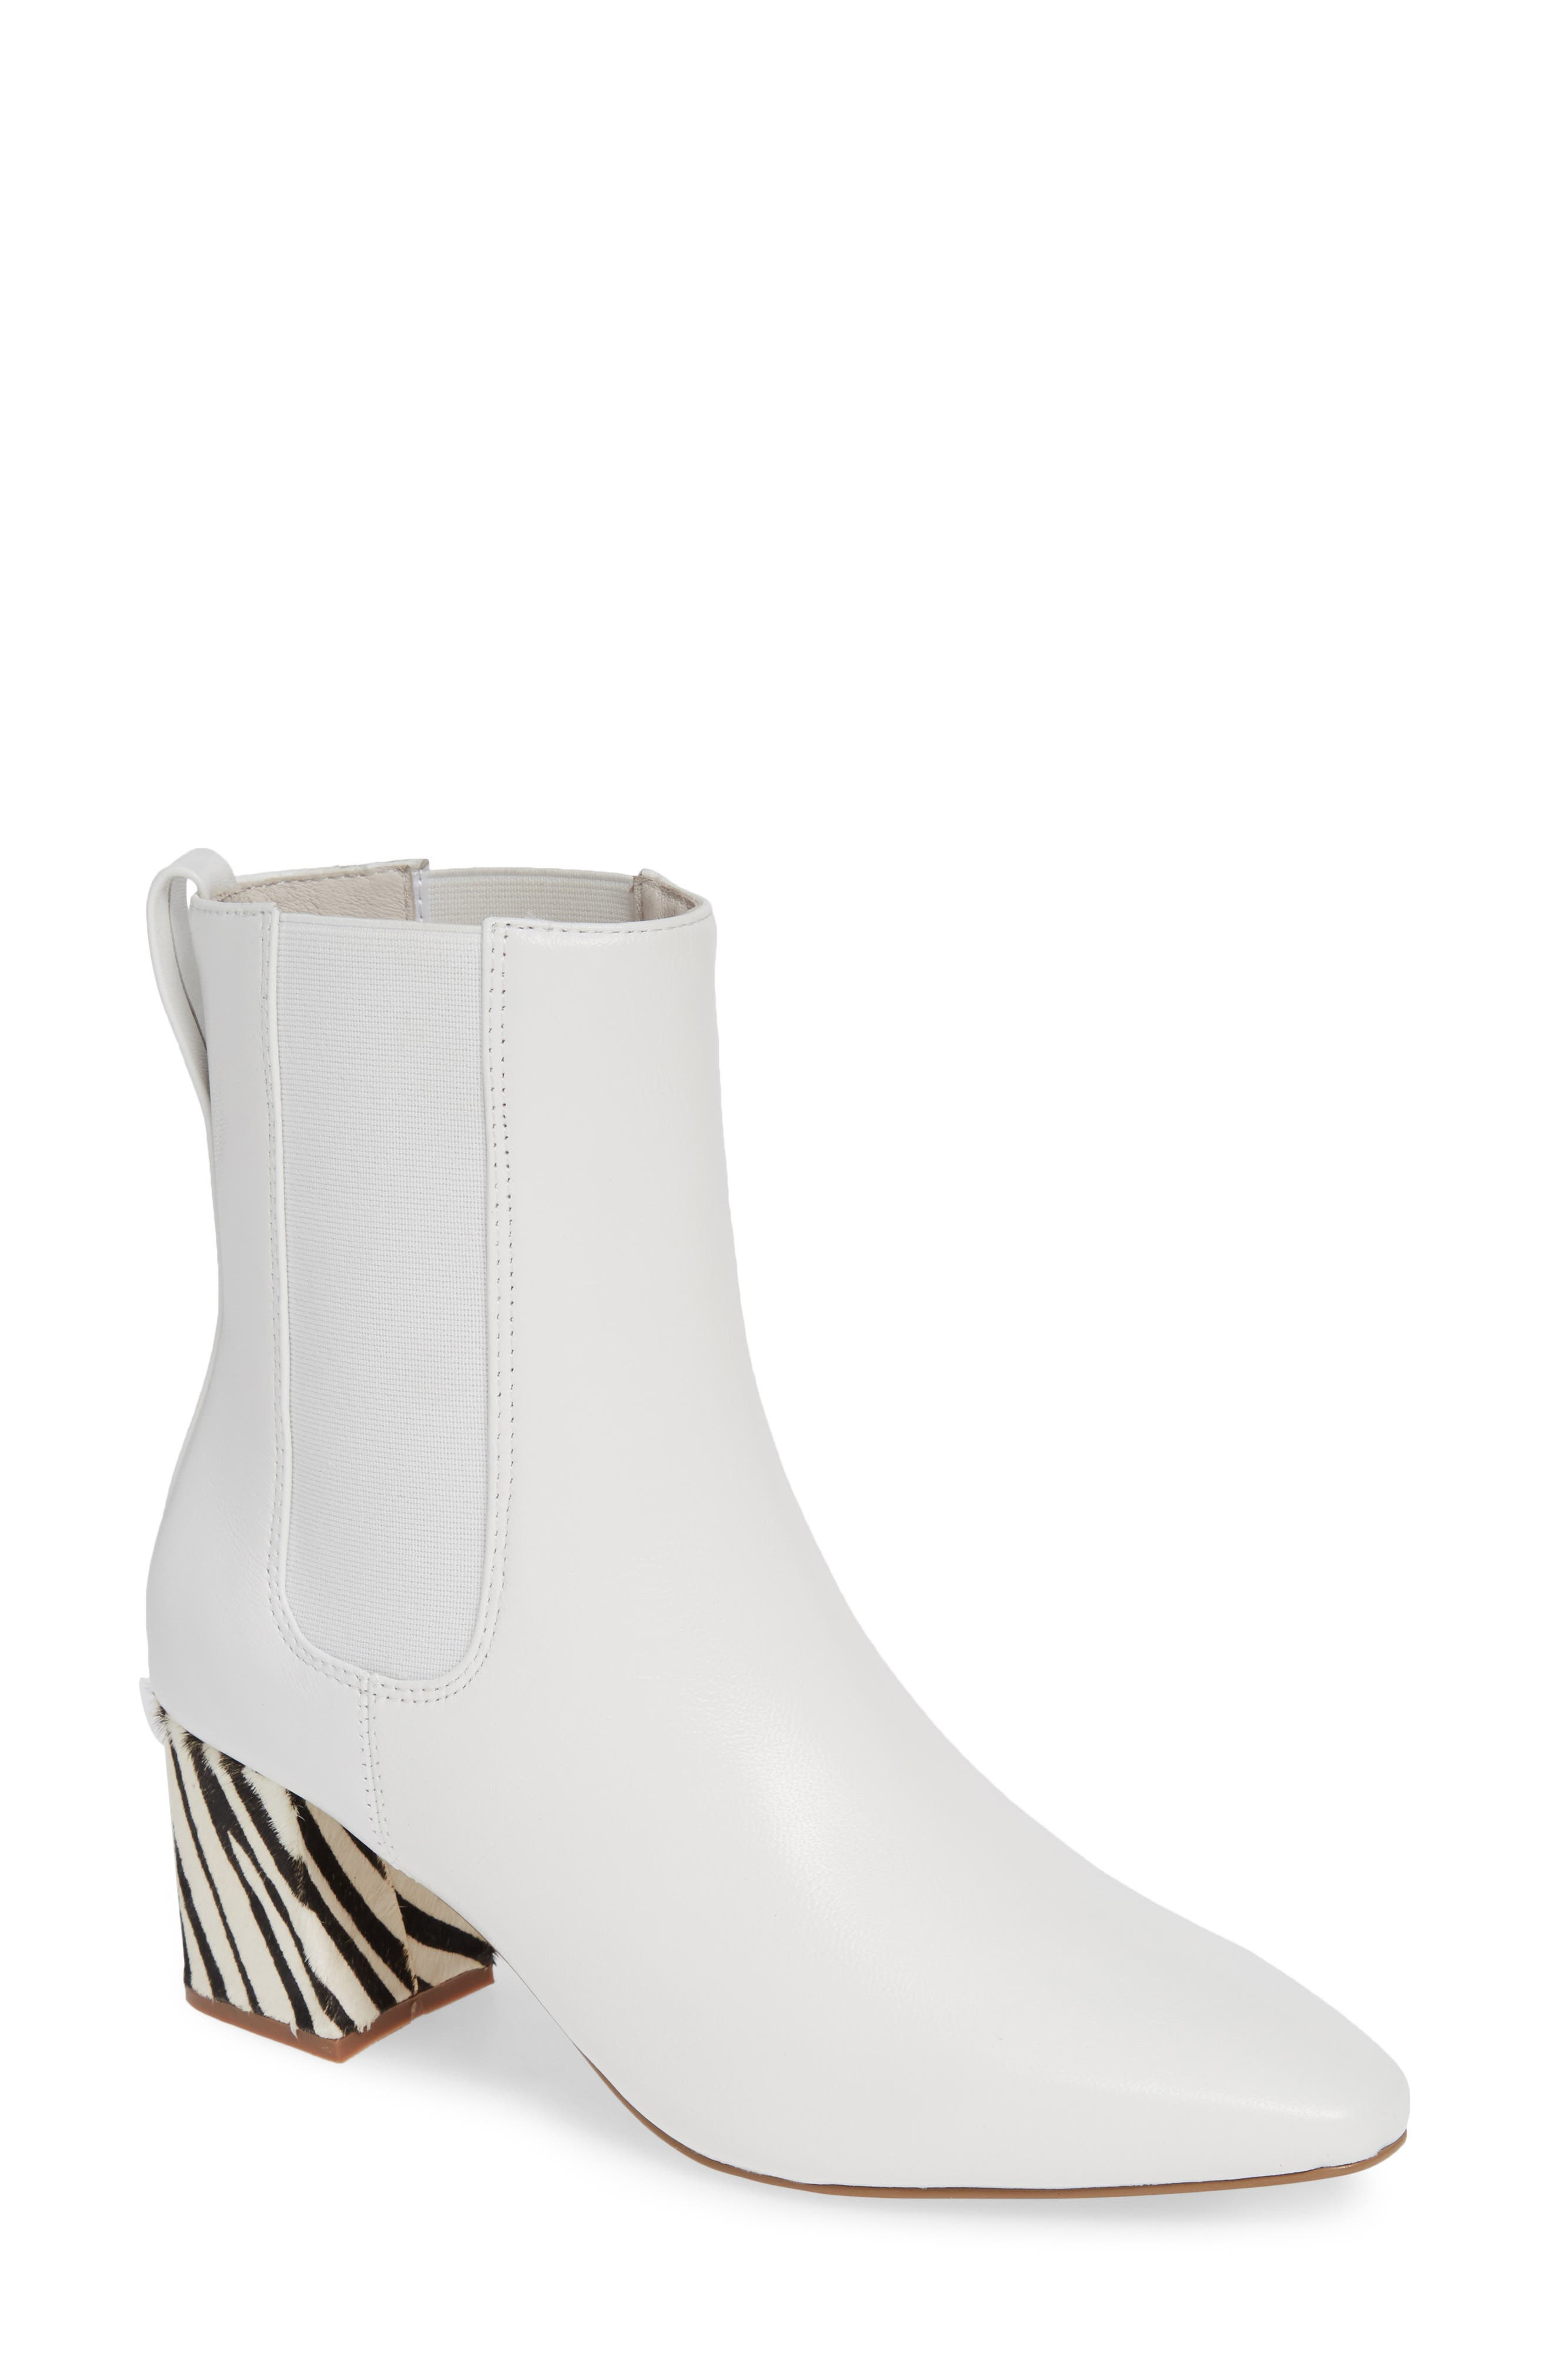 MATISSE Off Duty Genuine Calf Hair Chelsea Bootie in White Leather